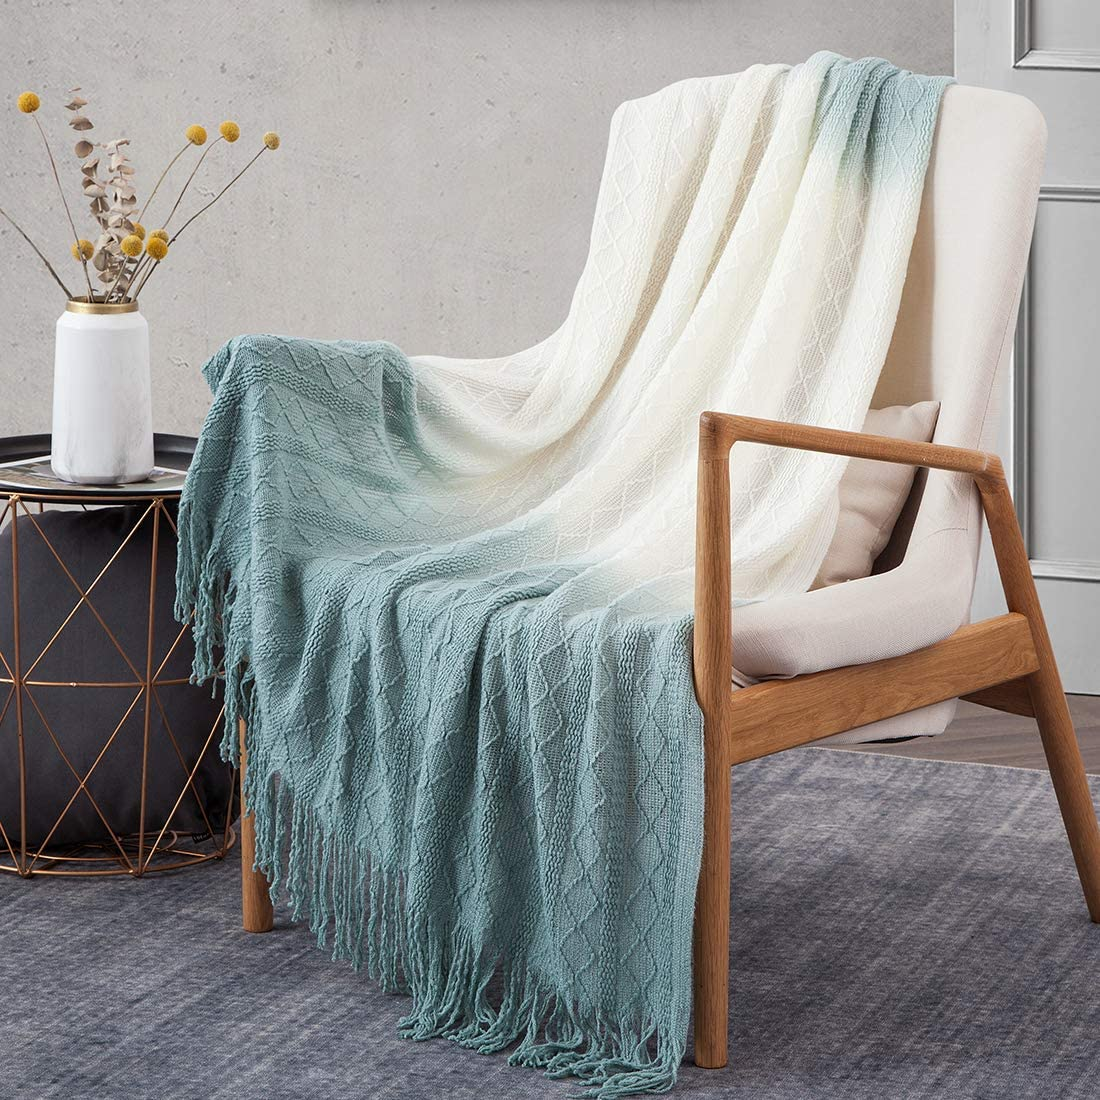 Coastal Blankets & Throws For Your Sofa